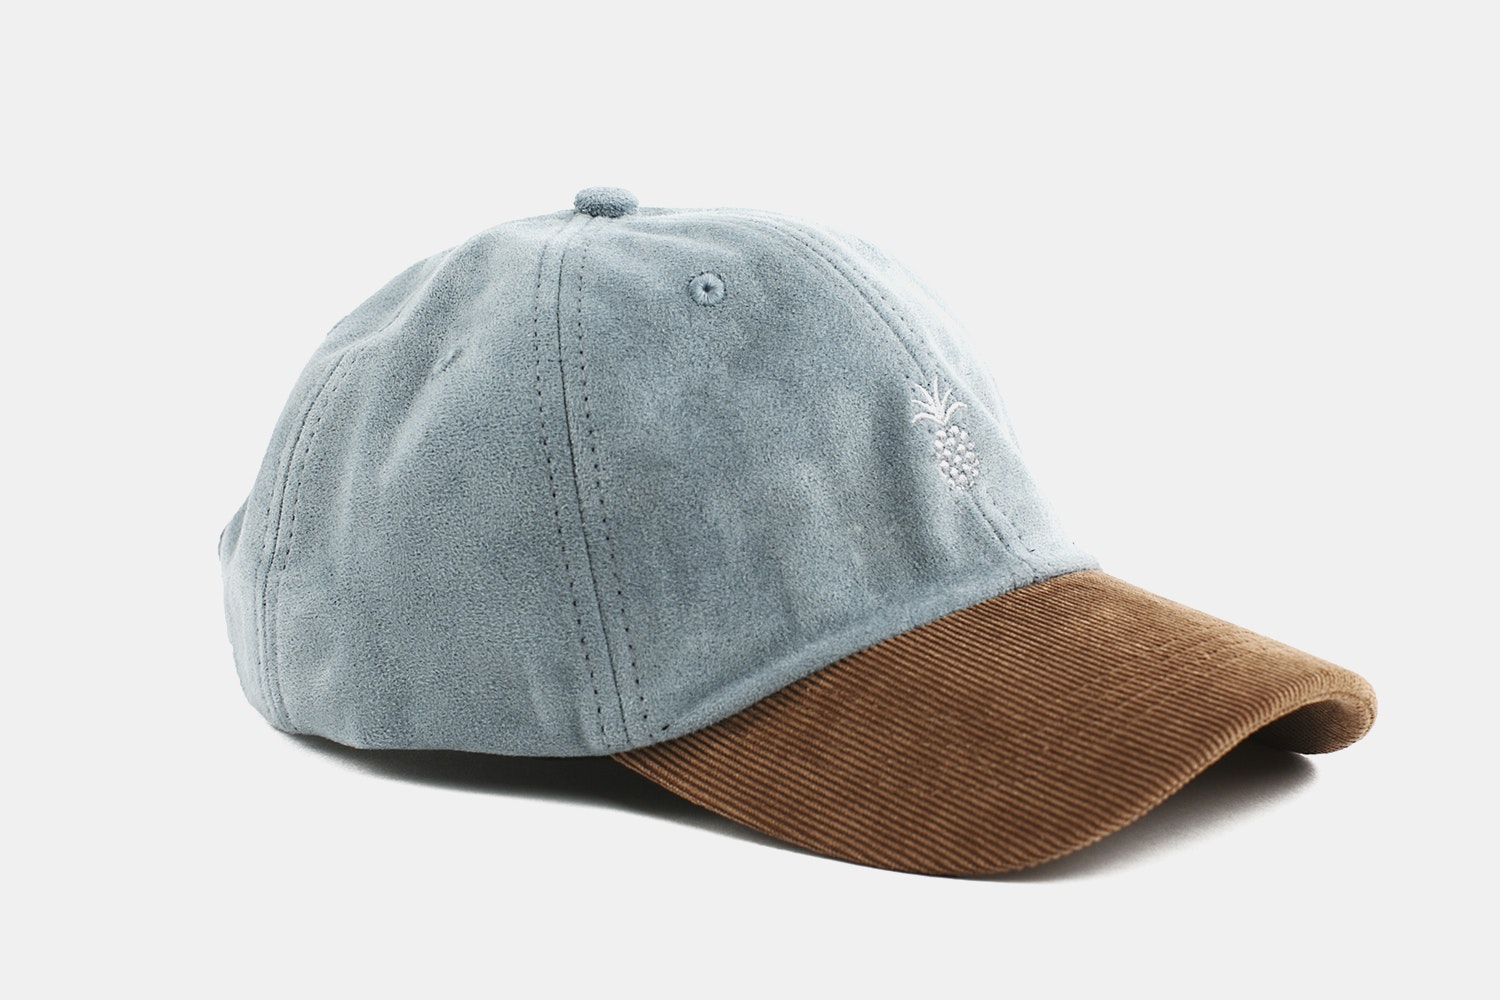 Pineapple Two-Tone Cap - Steel Blue & Corduroy